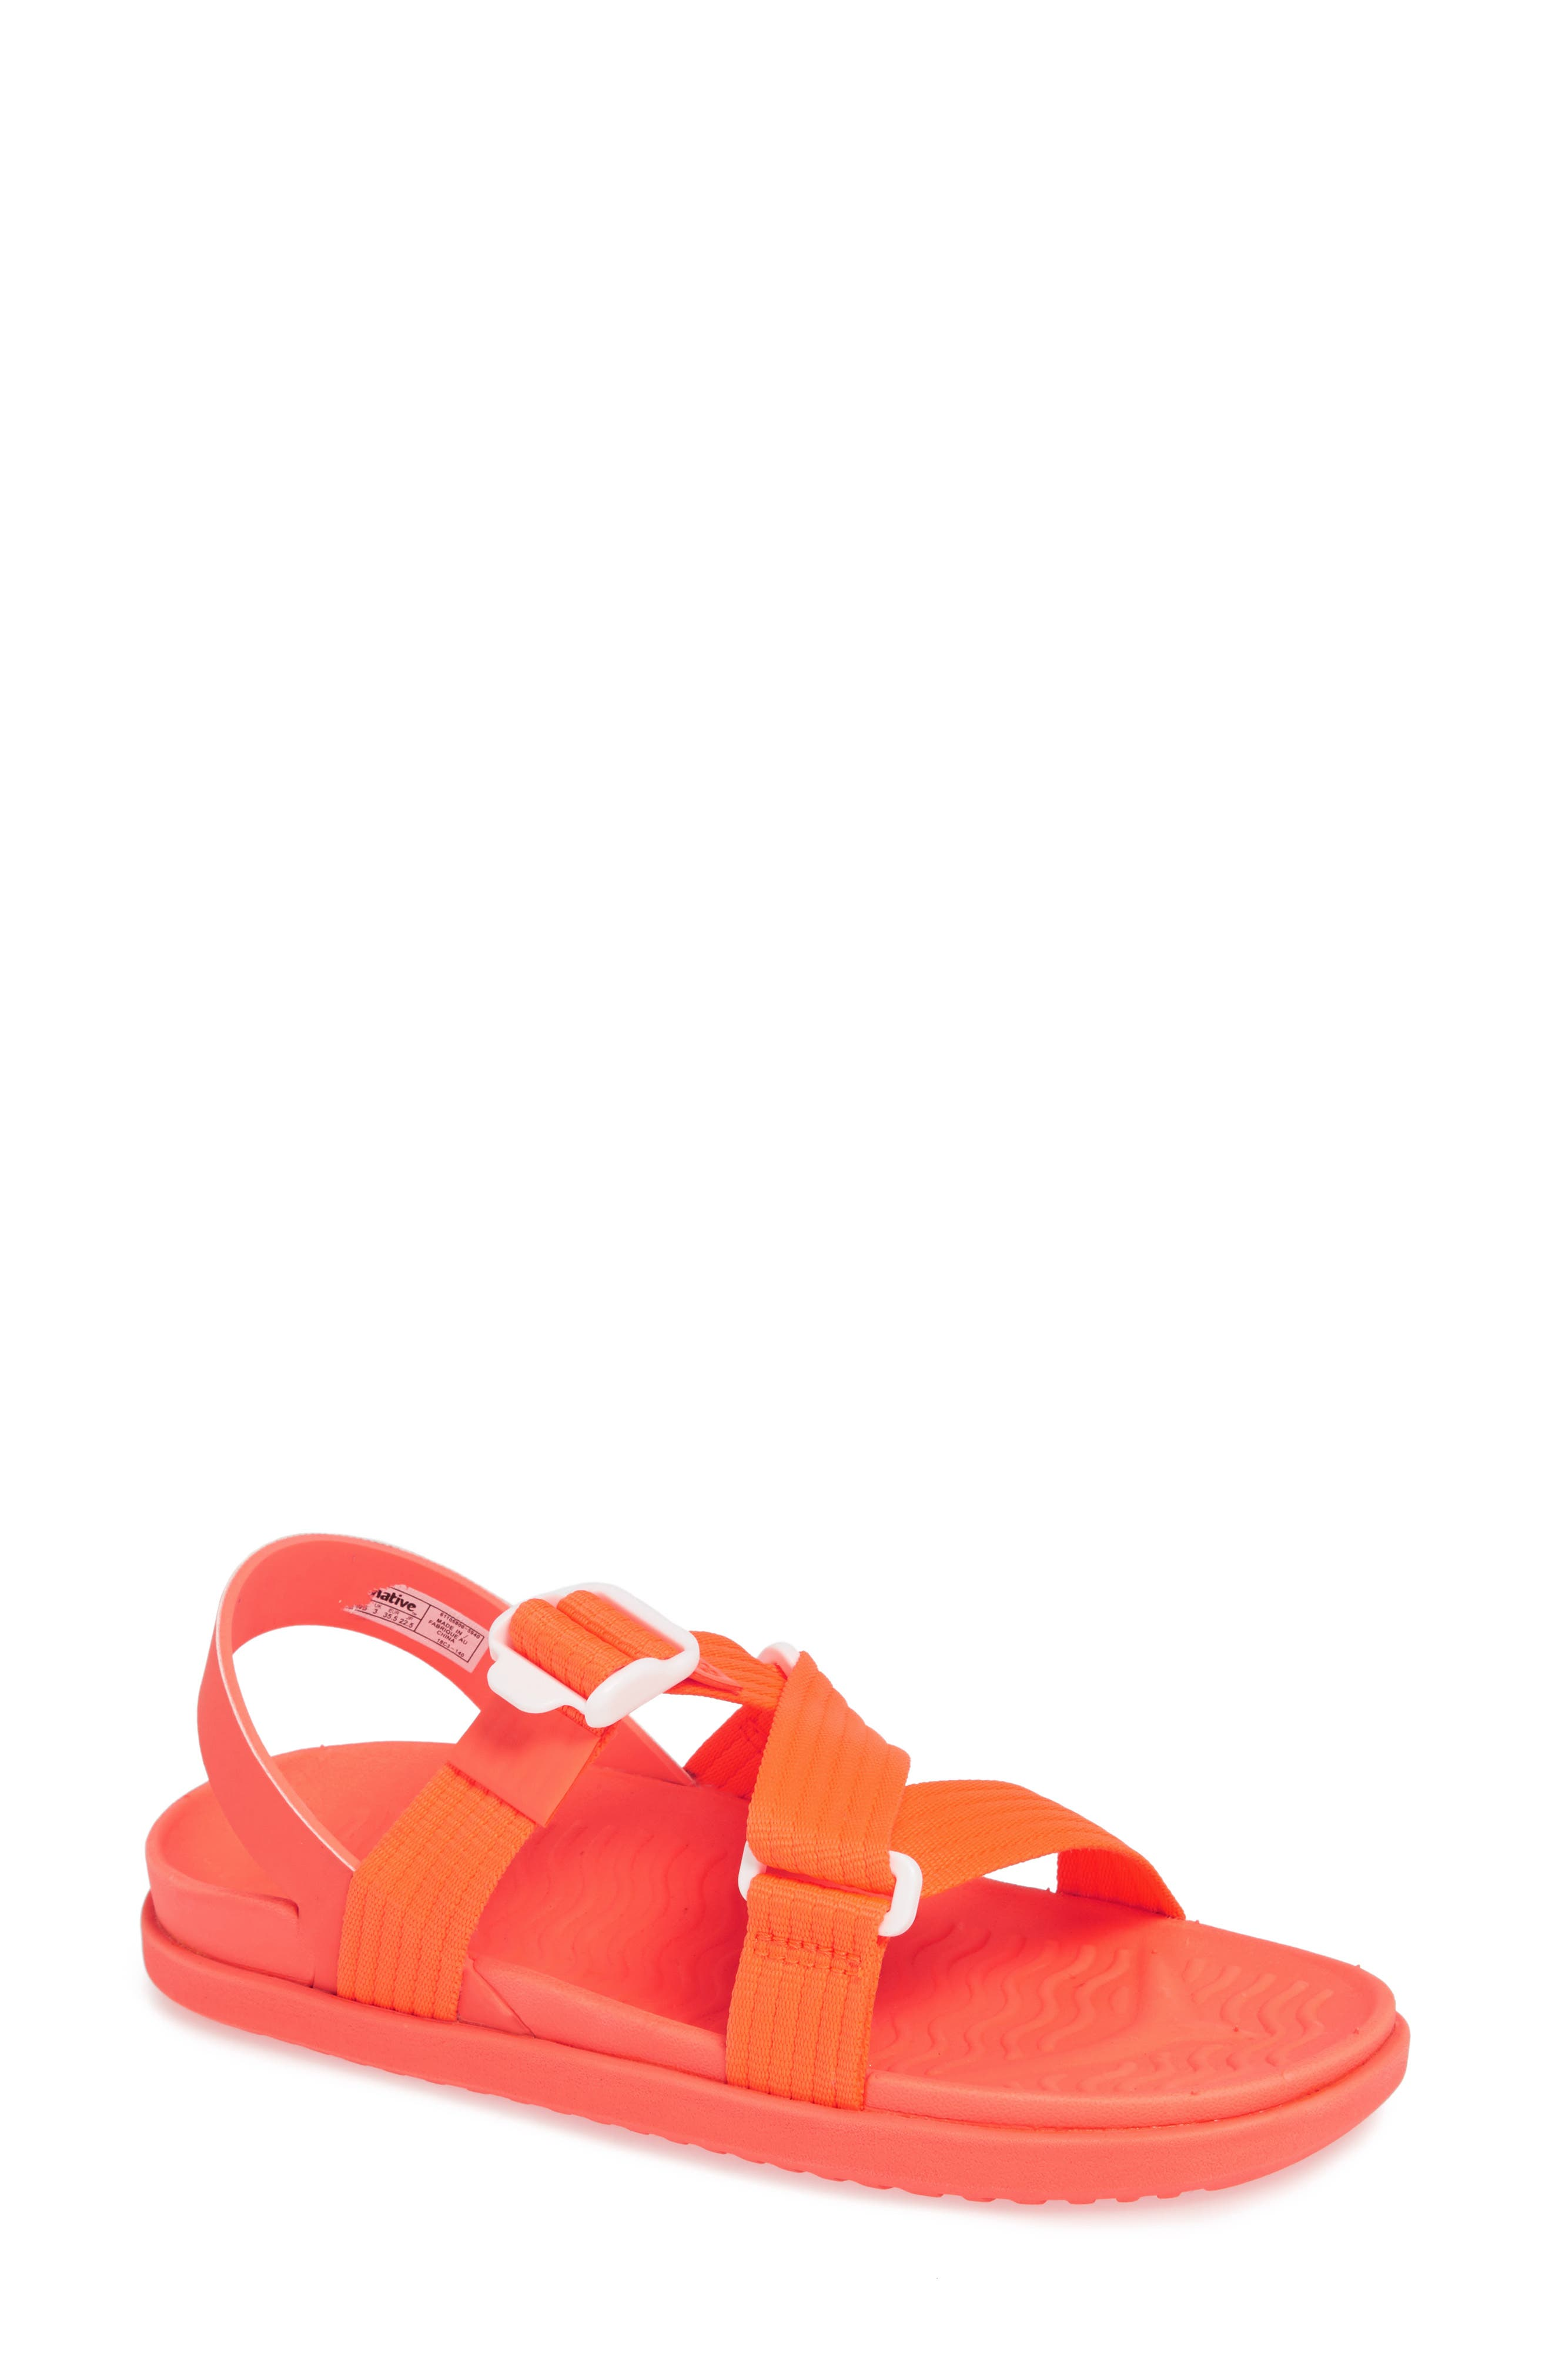 Native Shoes Zurich Vegan Sandal, Coral